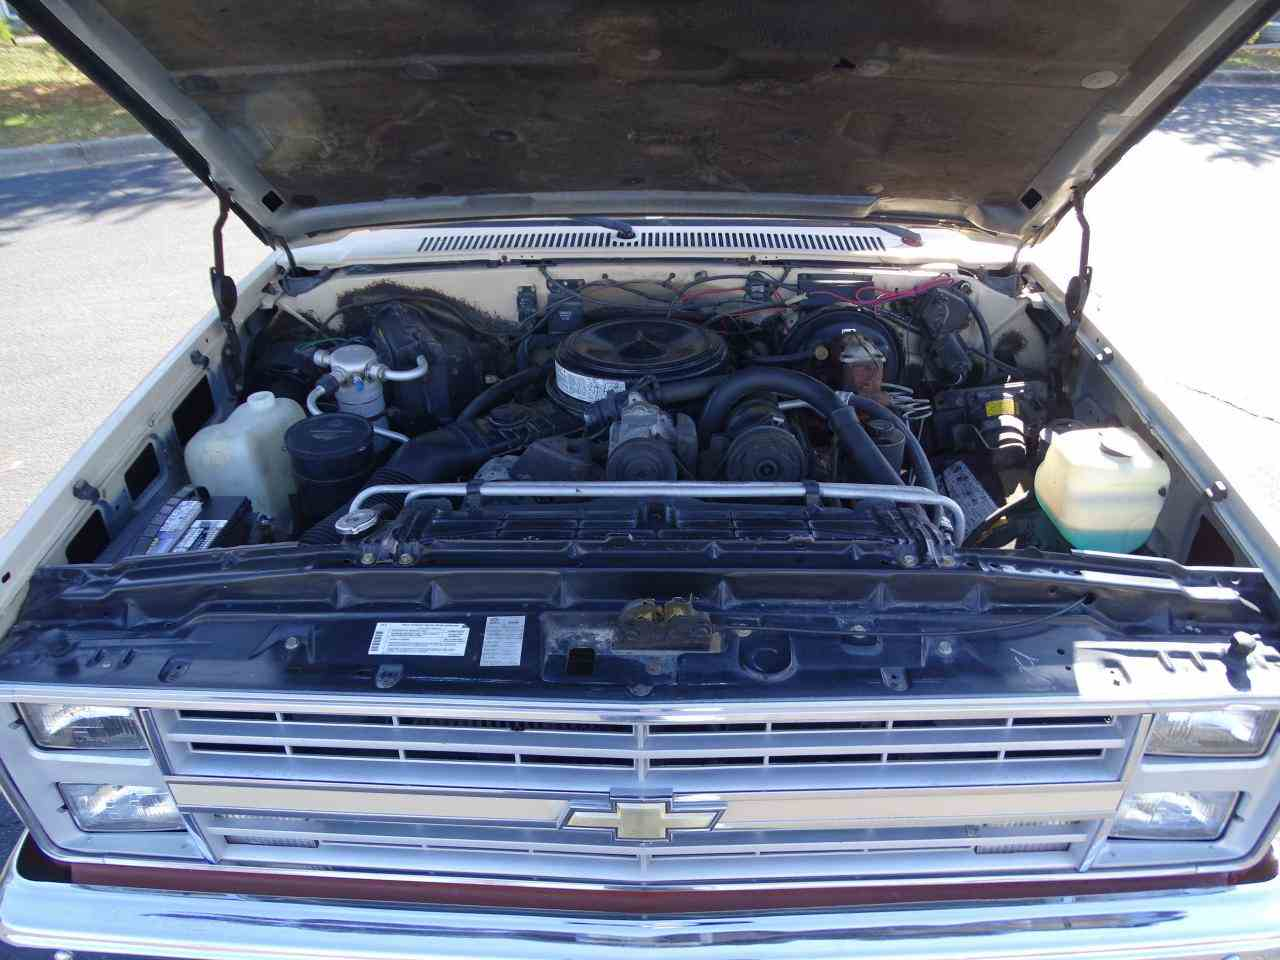 Large Picture of 1986 Chevrolet C/K 20 located in O'Fallon Illinois - $10,995.00 Offered by Gateway Classic Cars - St. Louis - MZE8